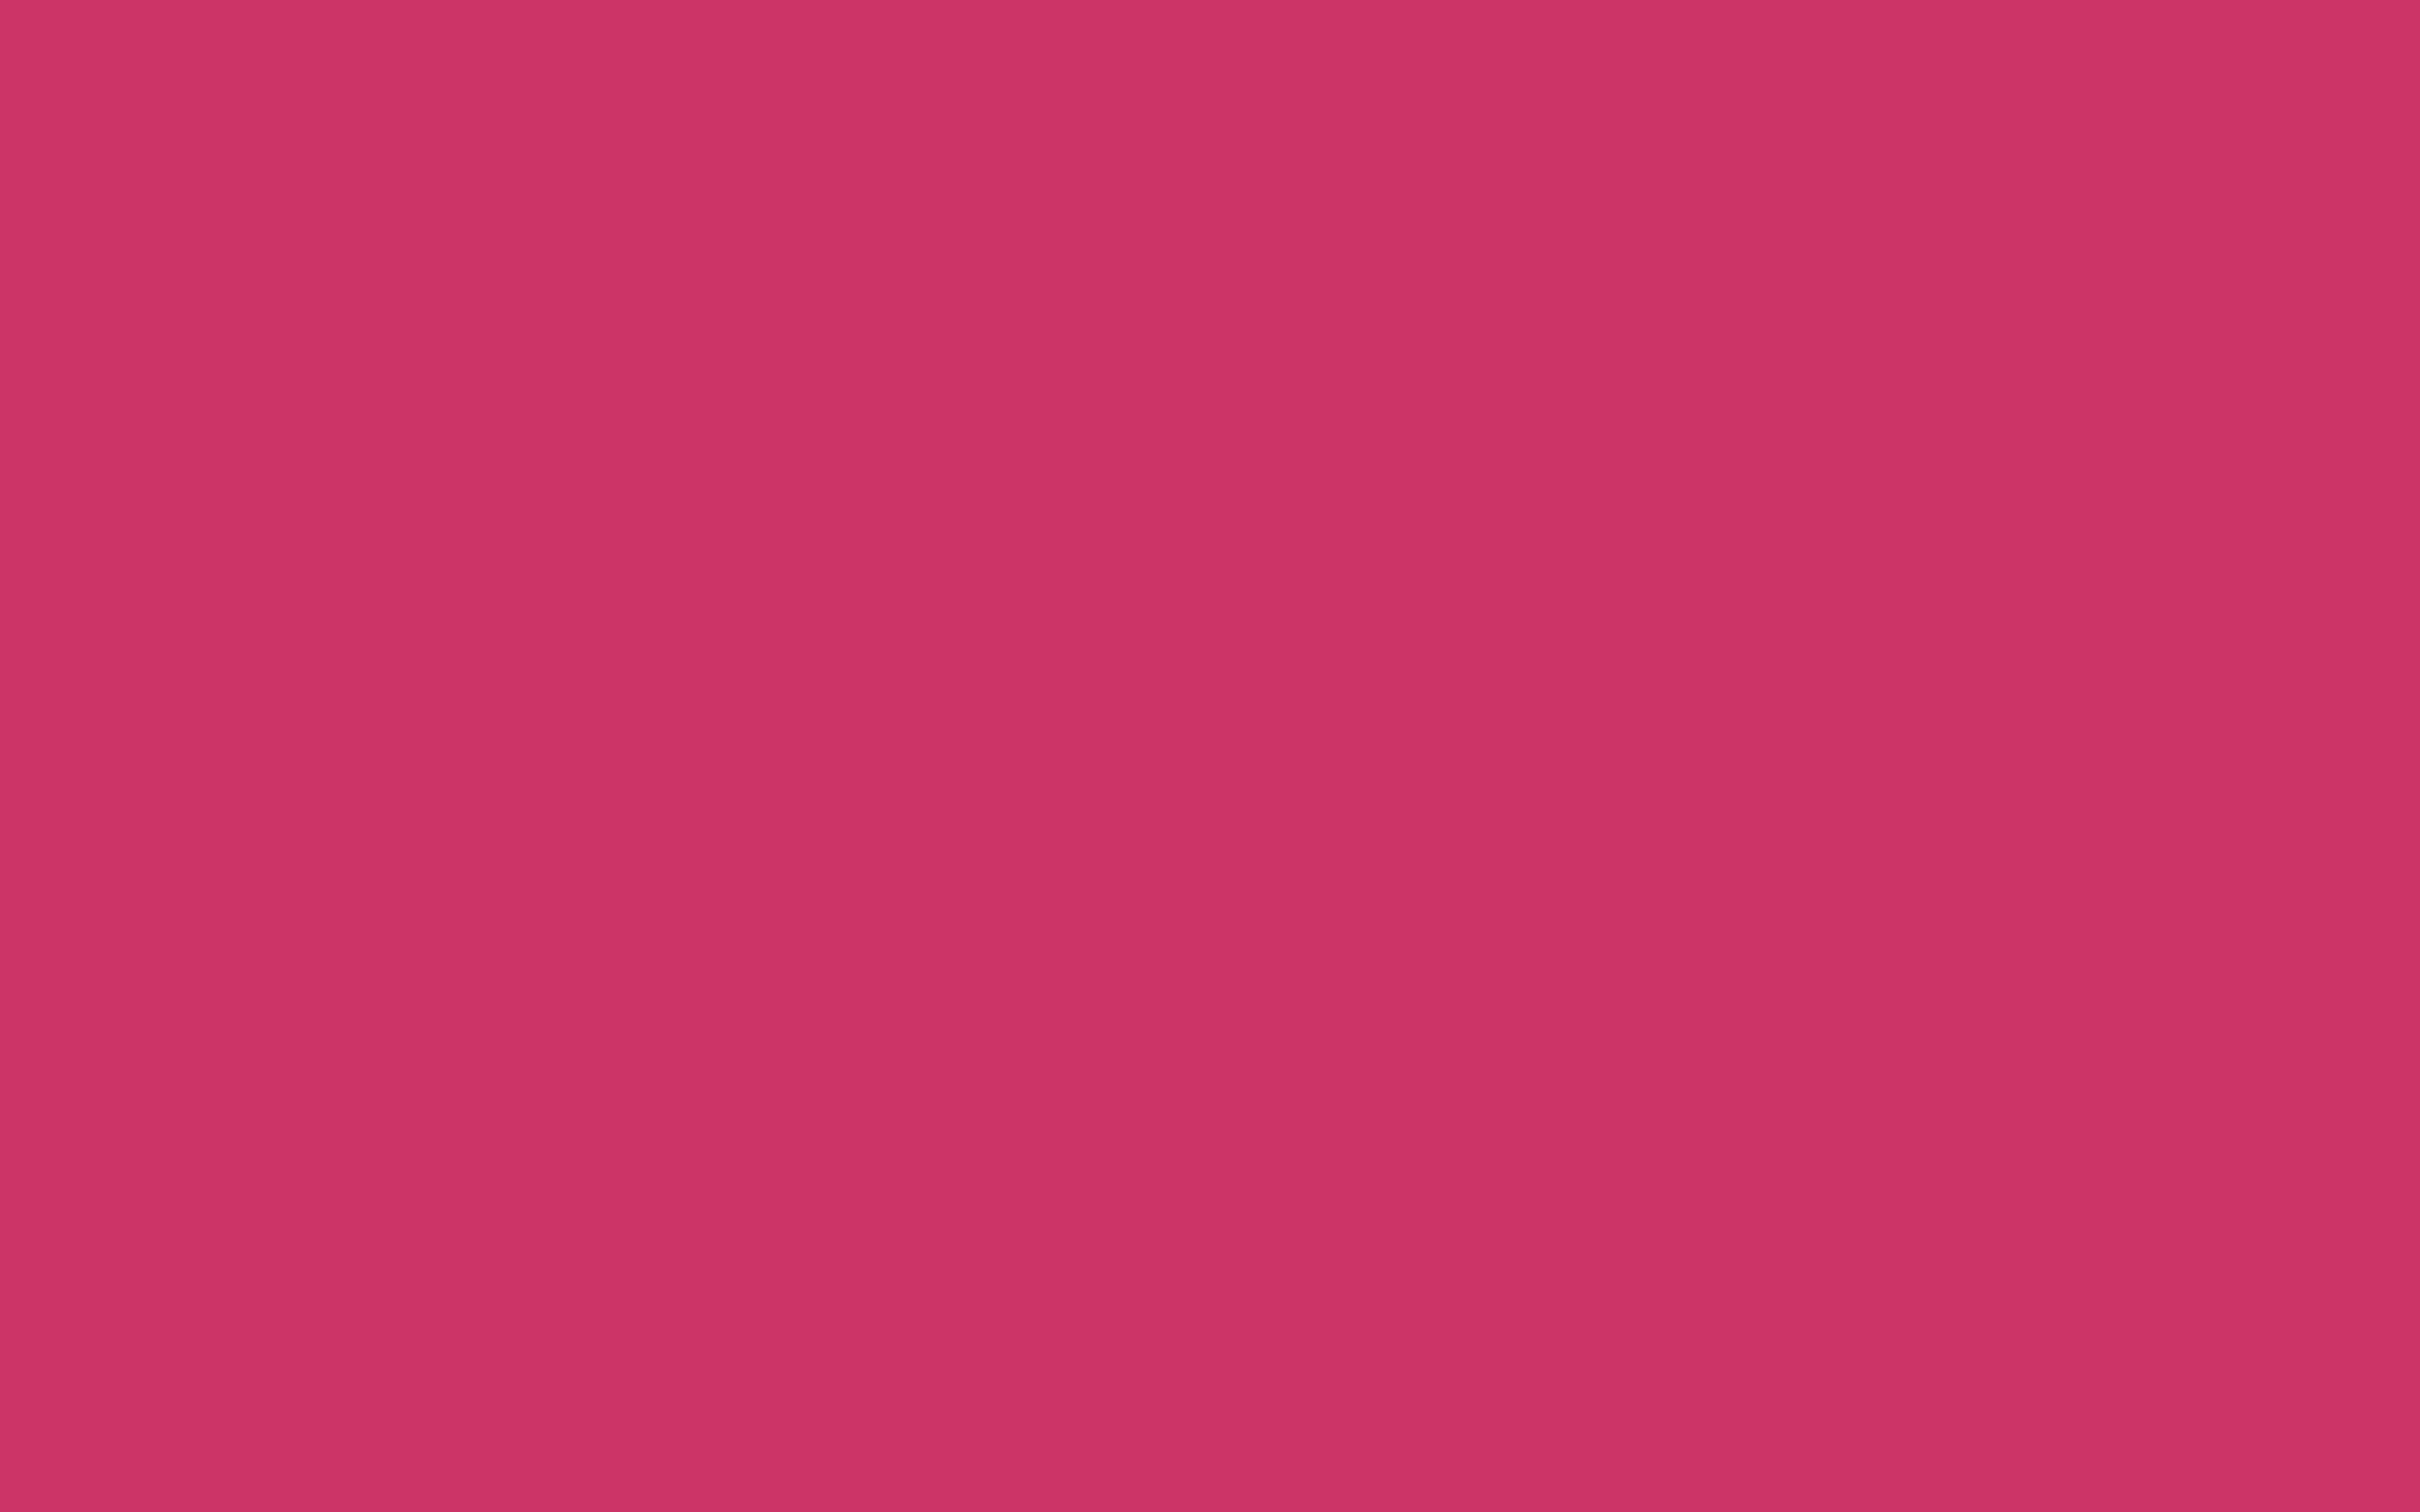 2560x1600 Steel Pink Solid Color Background